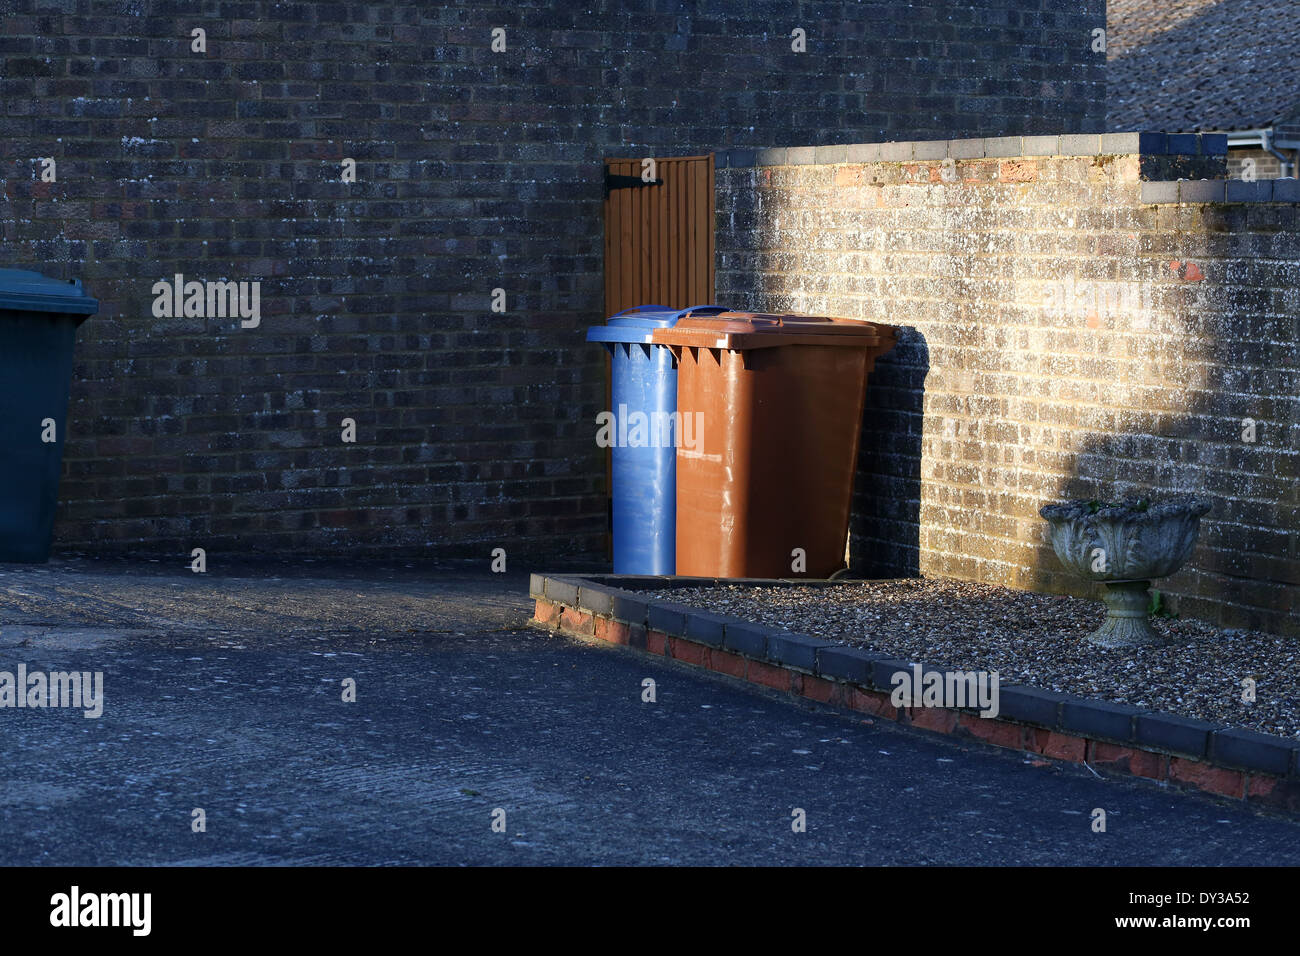 Wheelie bins, brown and blue trash cans sit side by side behind the house - Stock Image